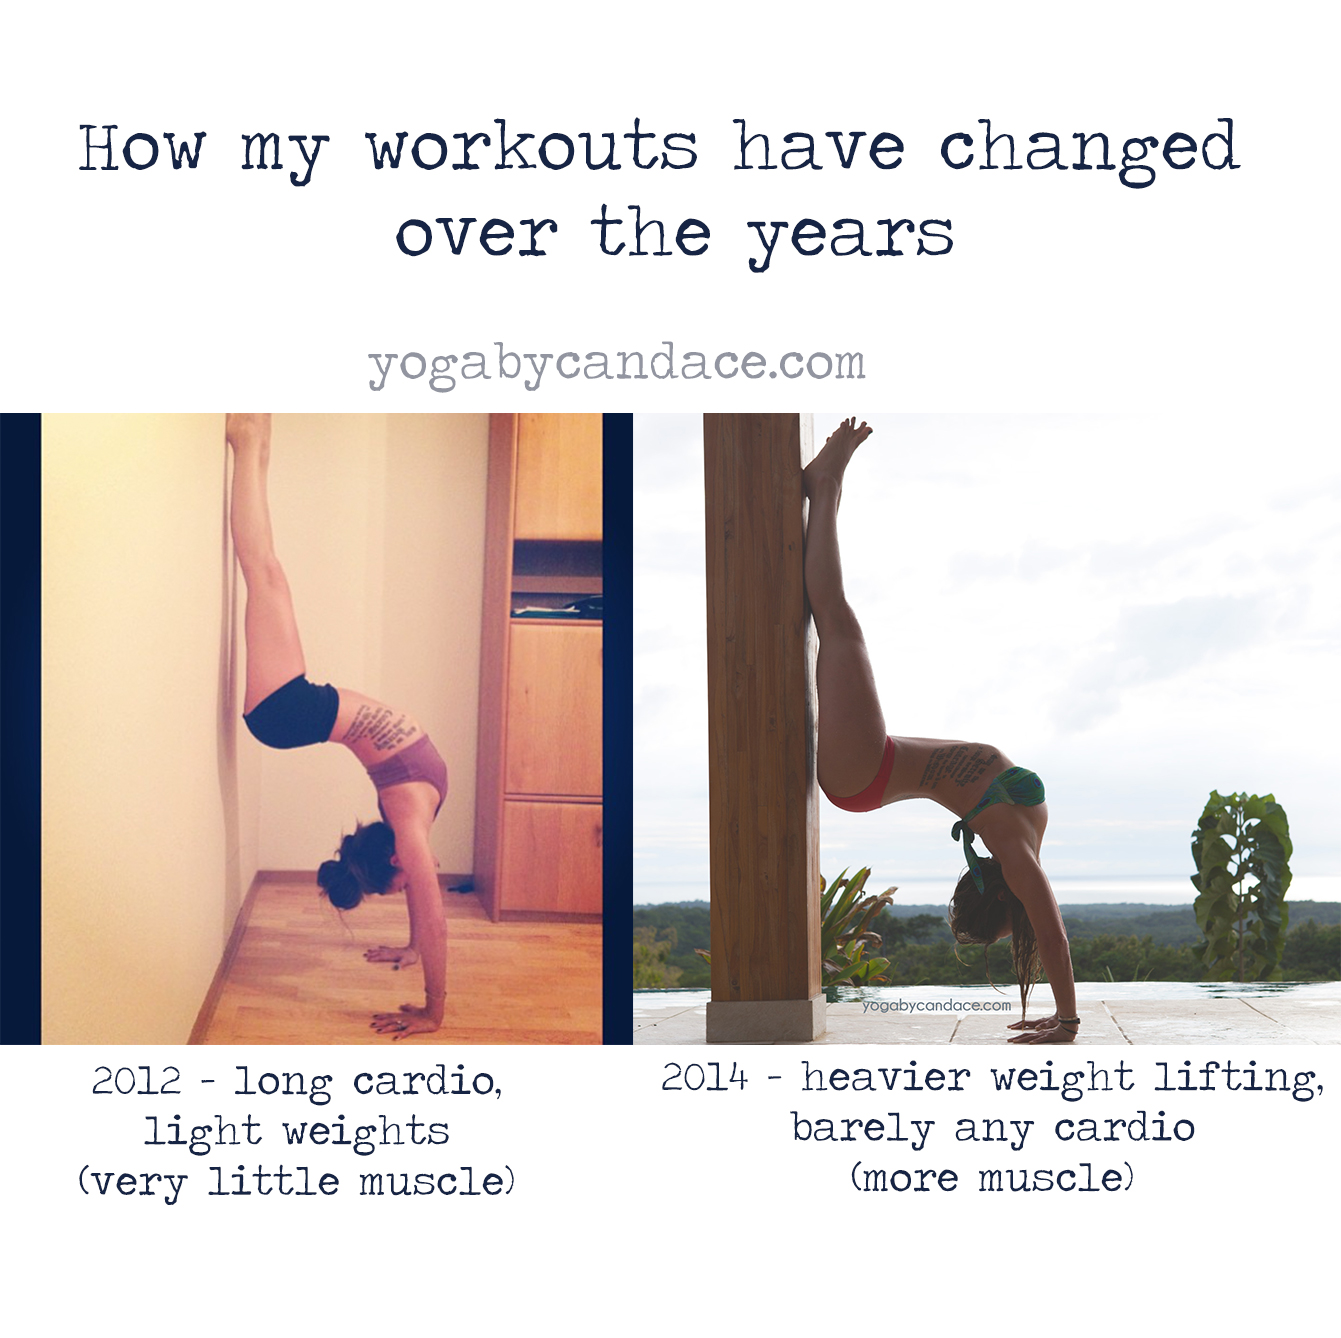 How my workouts have changed over the years